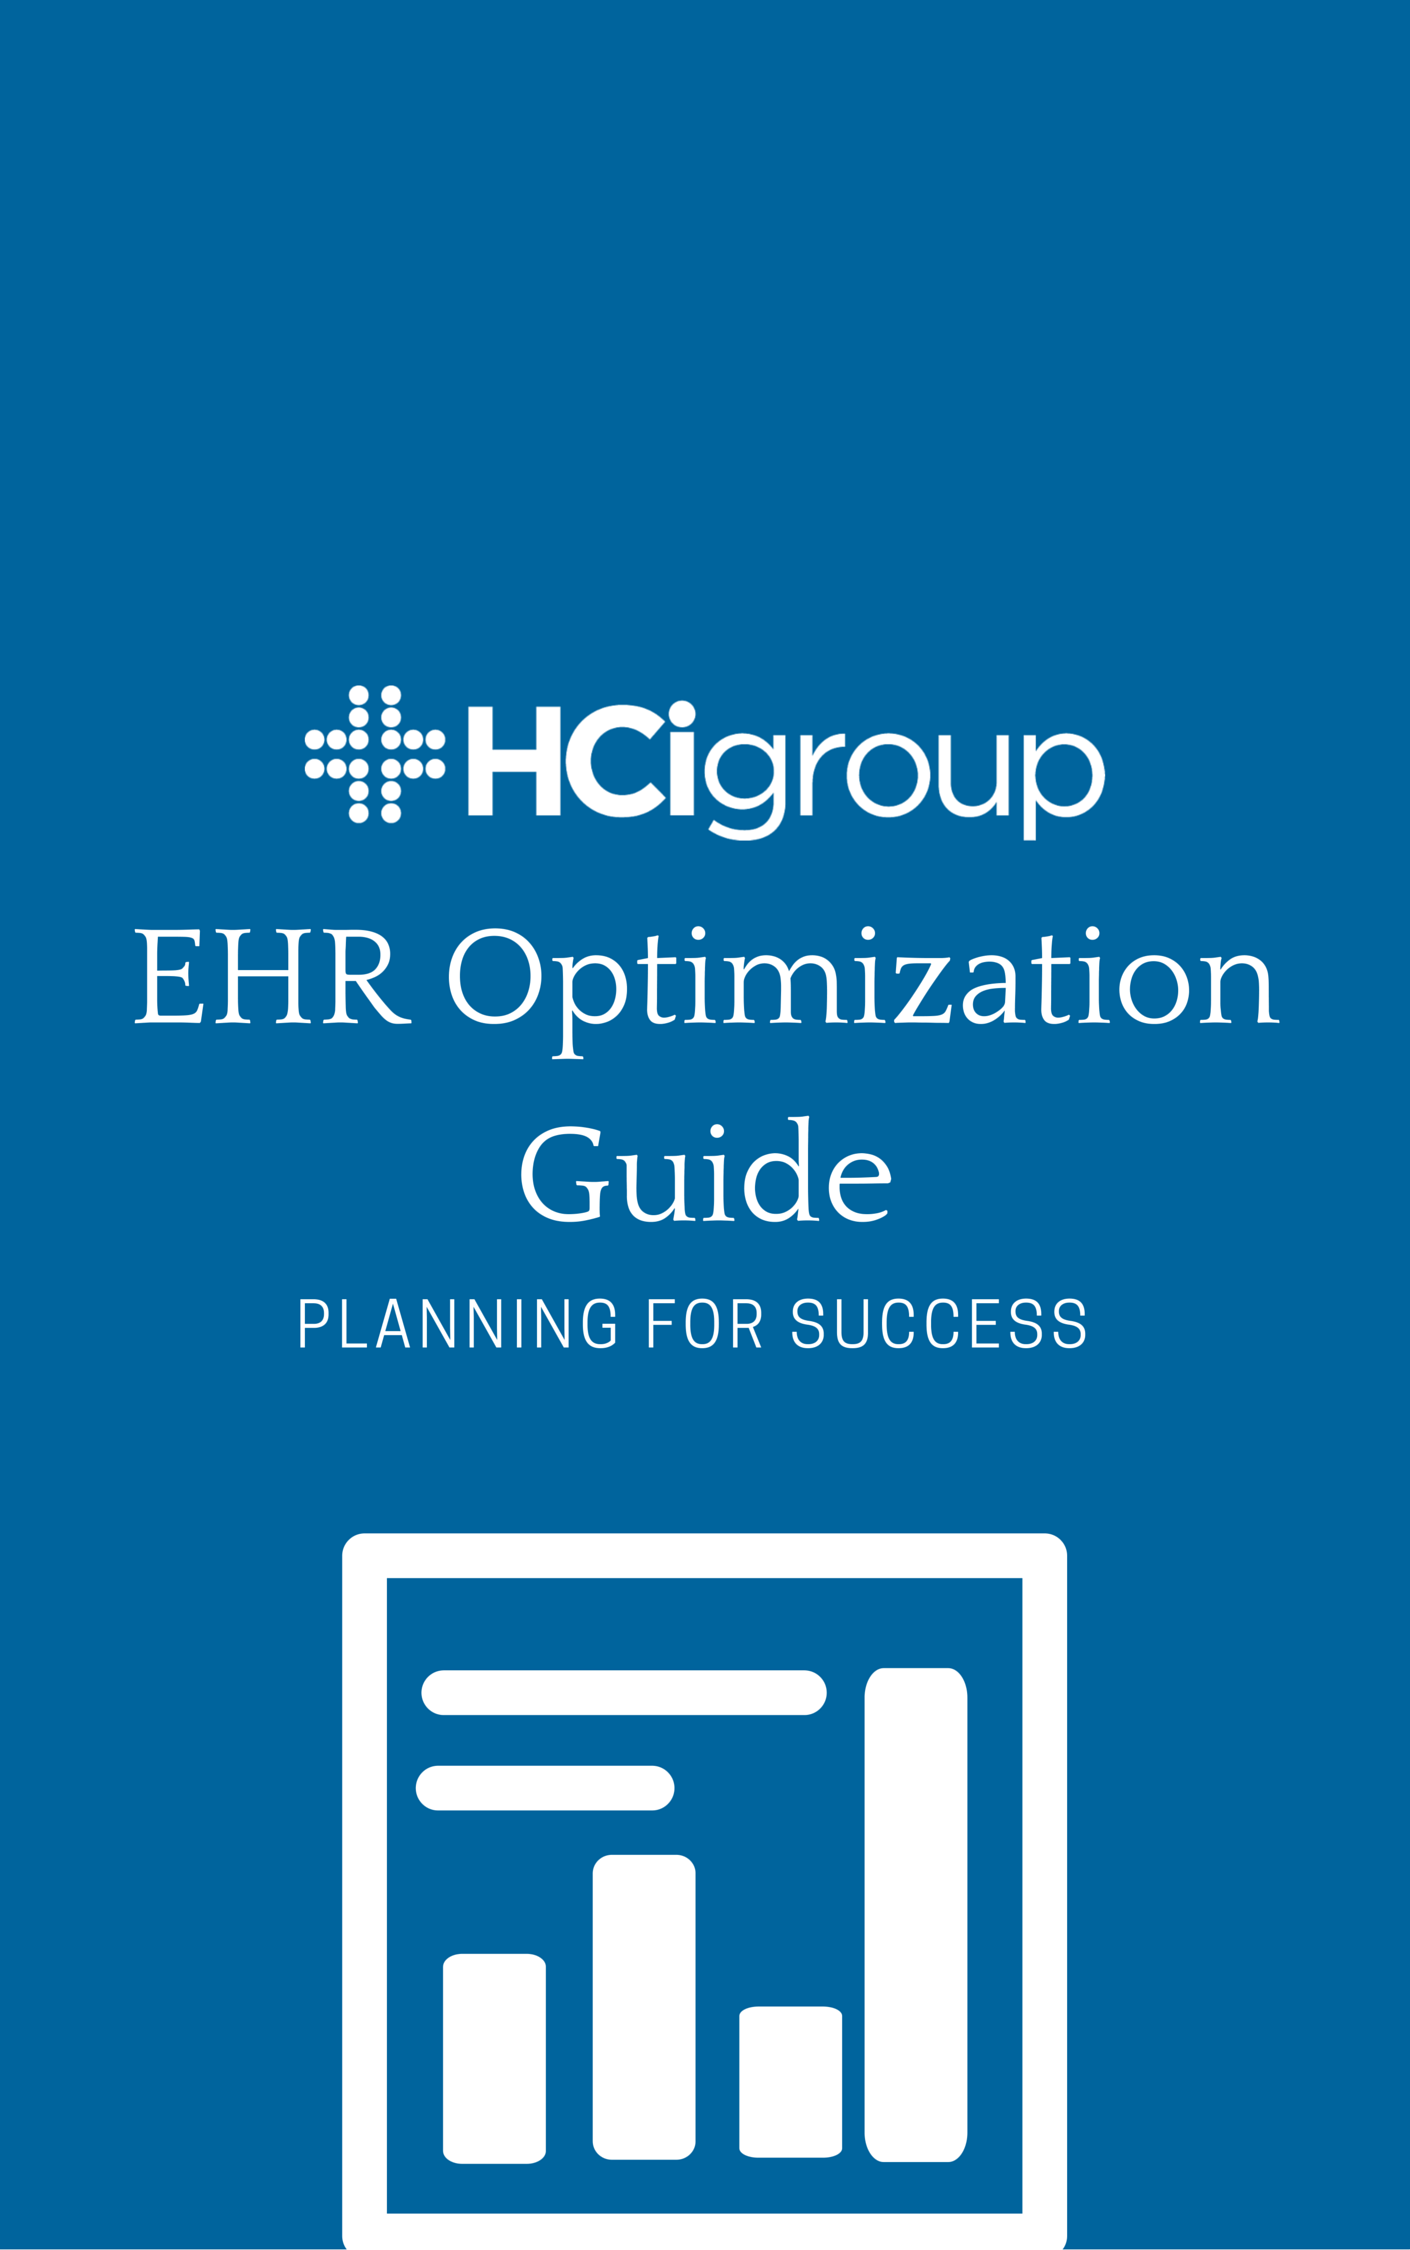 EHR Optimization Planning for Success